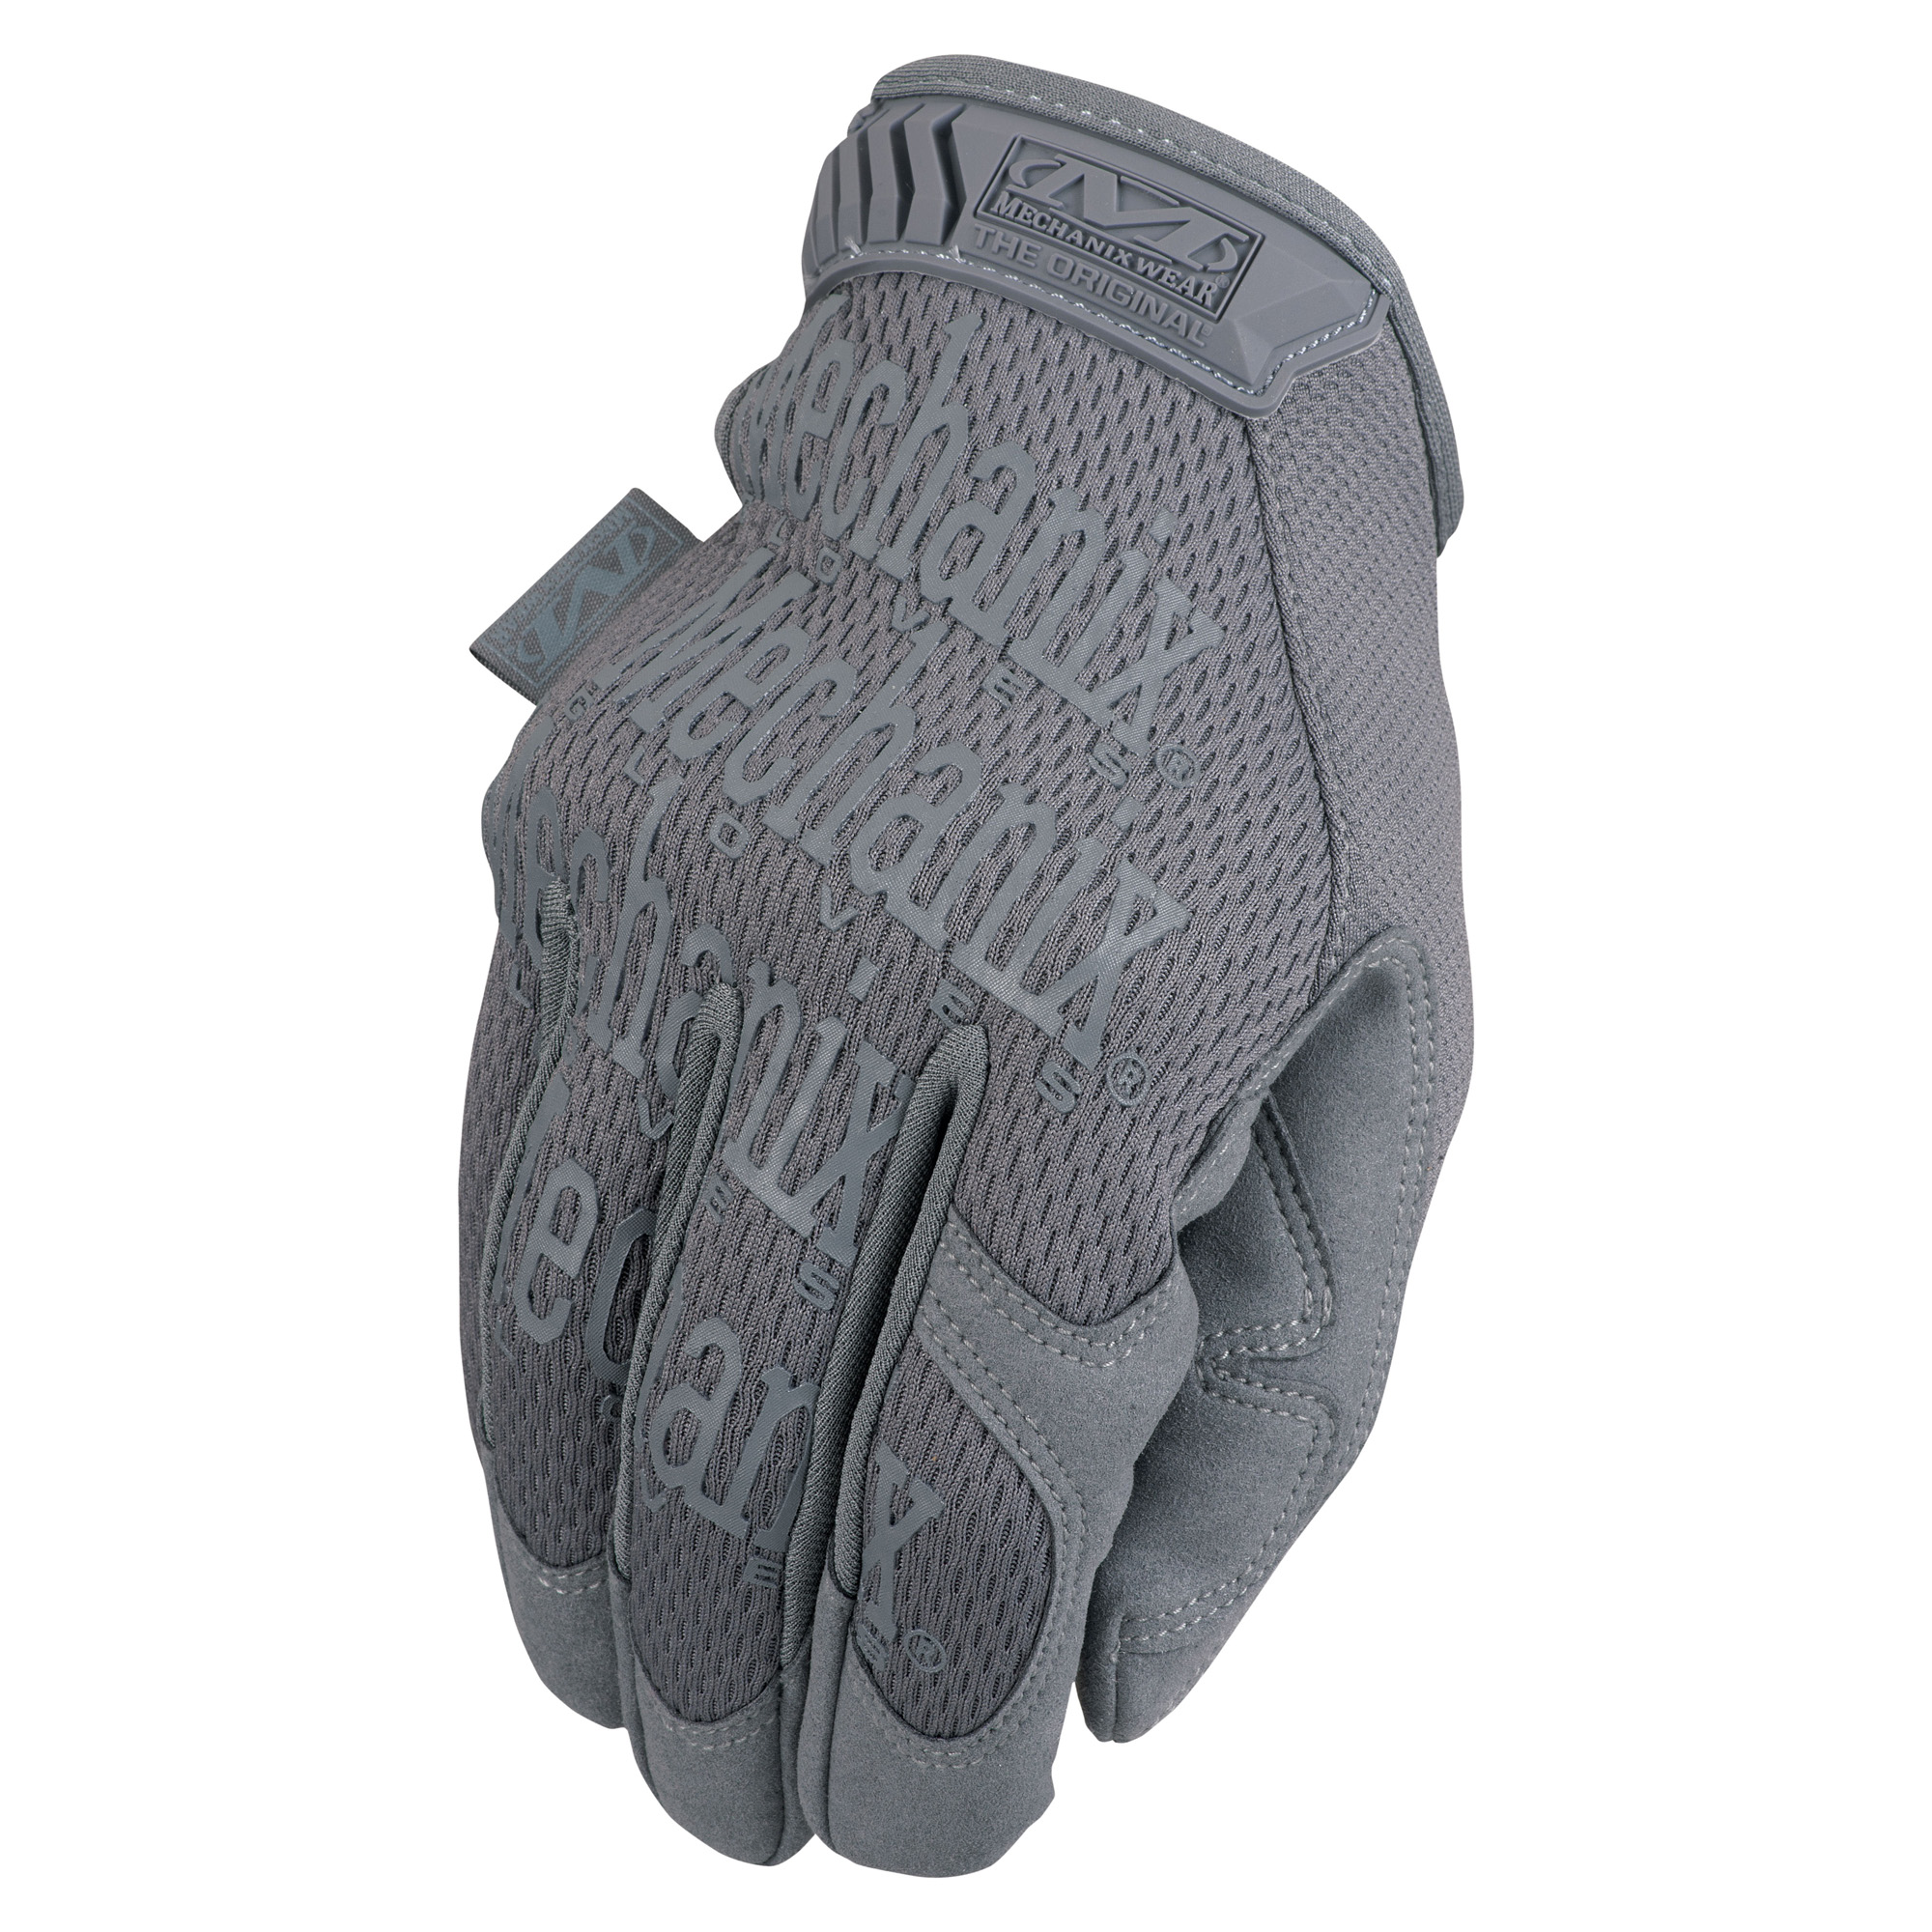 """The Original(R) tactical glove revolutionized the hand protection industry with its versatility and anatomical design. Rugged 0.8mm synthetic leather infused with touchscreen technology creates the perfect blend of dexterity and durability. Breathable TrekDry(R) conforms to the back of your hands to help keep you cool and comfortable in the field. The Original delivers unmatched fit"""" feel and functionality so you can focus on what lies down range."""